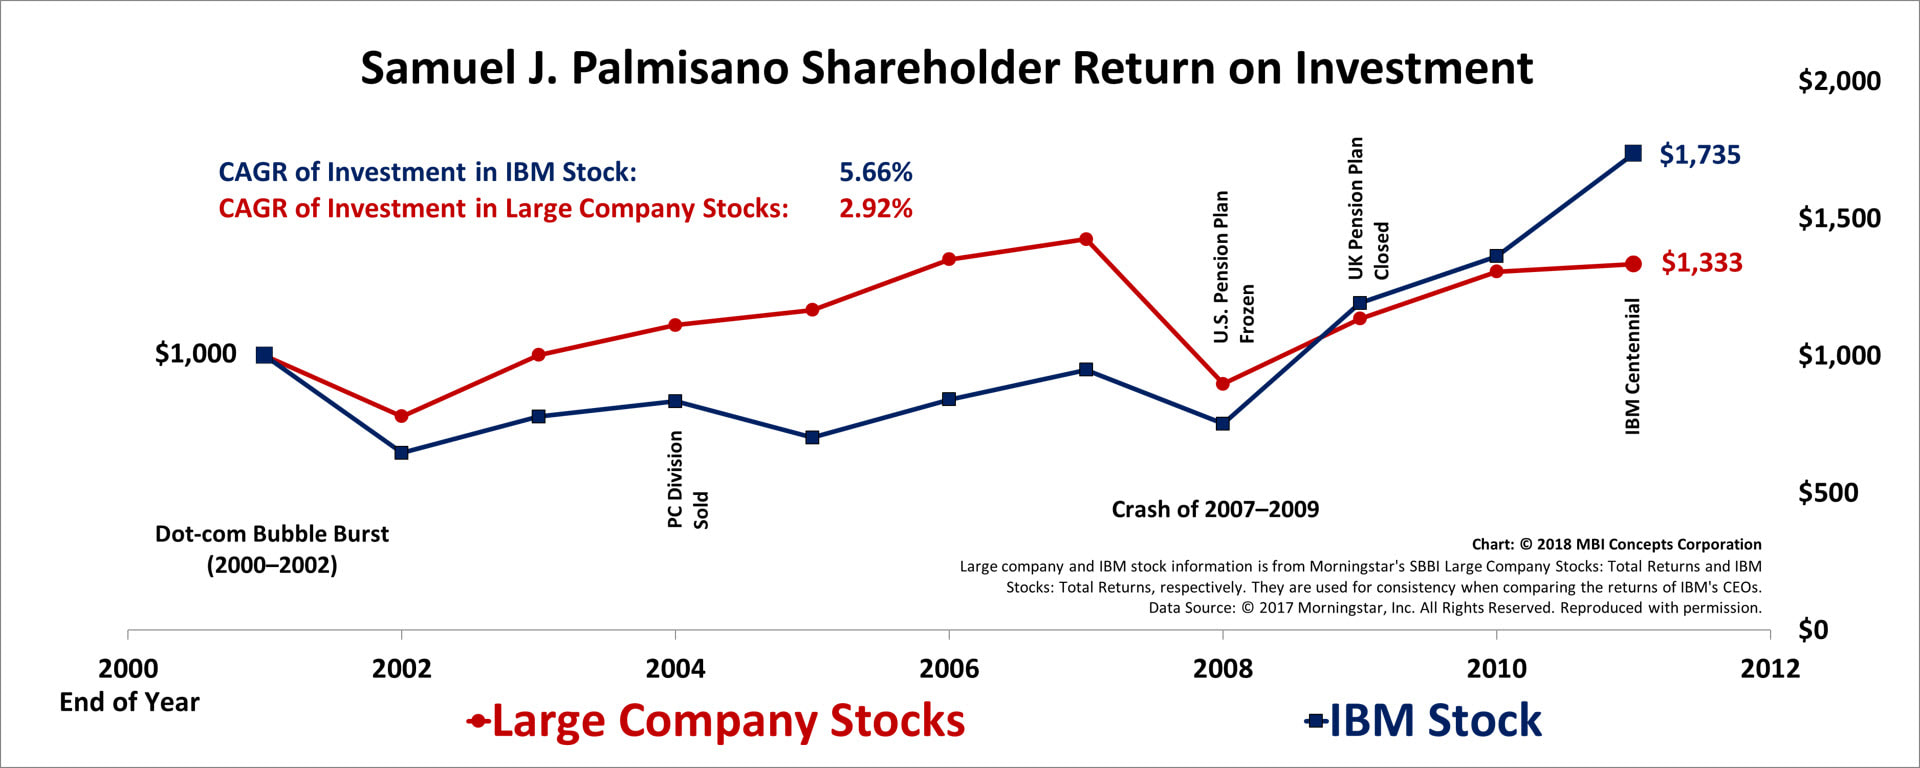 Line chart of Samuel J. Palmisano's Shareholder Returns from 2002 through 2011 compared with large company stocks.